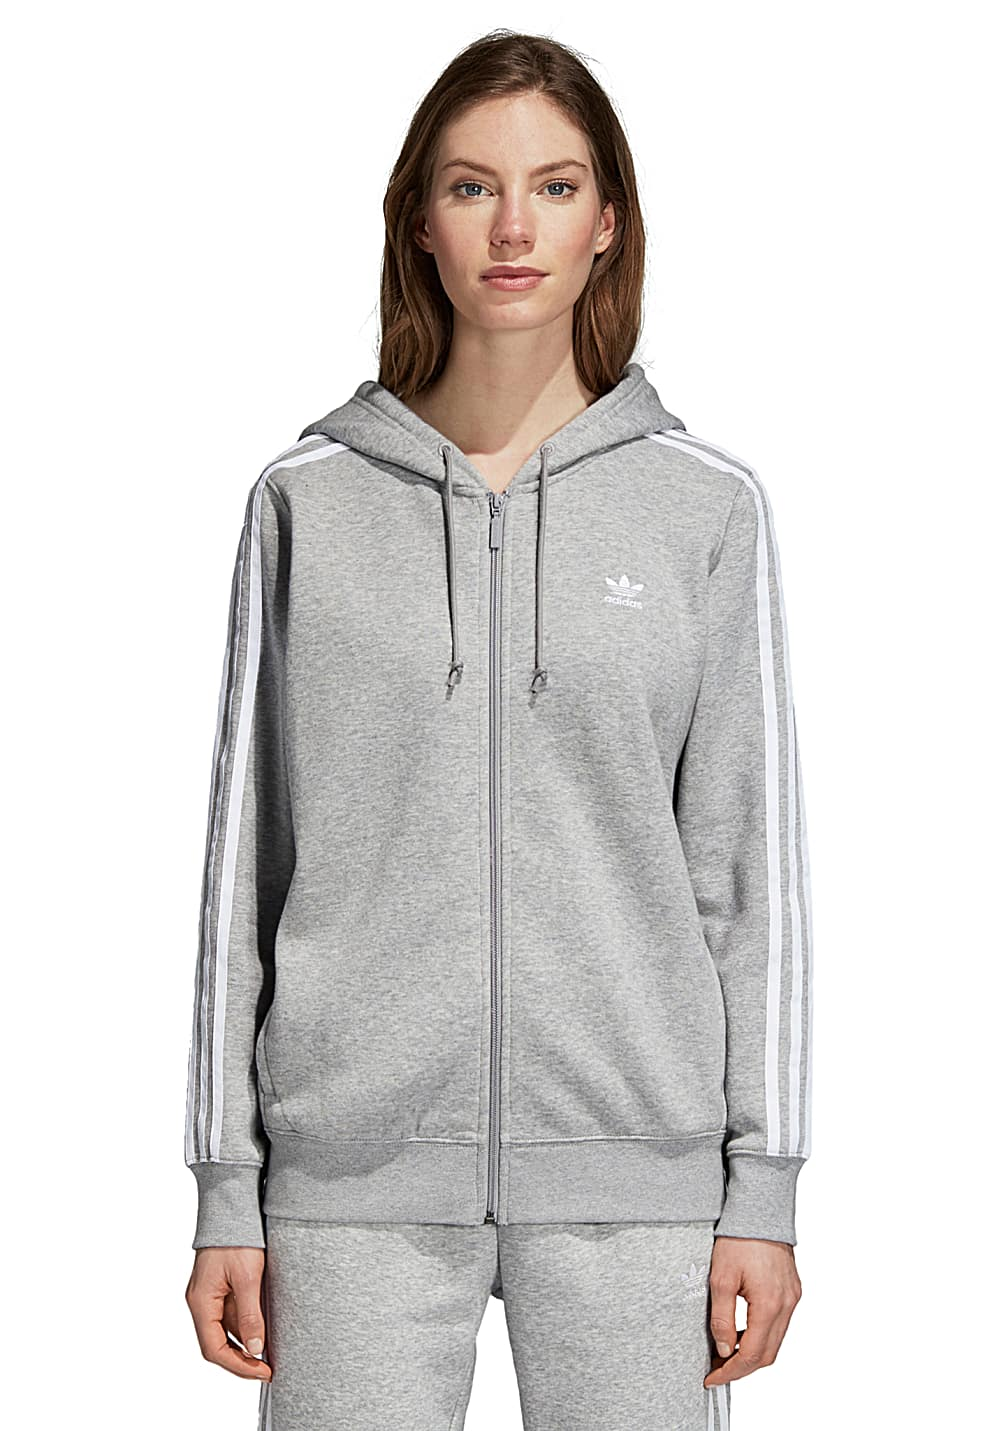 5b39c2630d adidas Originals 3 Stripes Zip - Kapuzenjacke für Damen - Grau ...